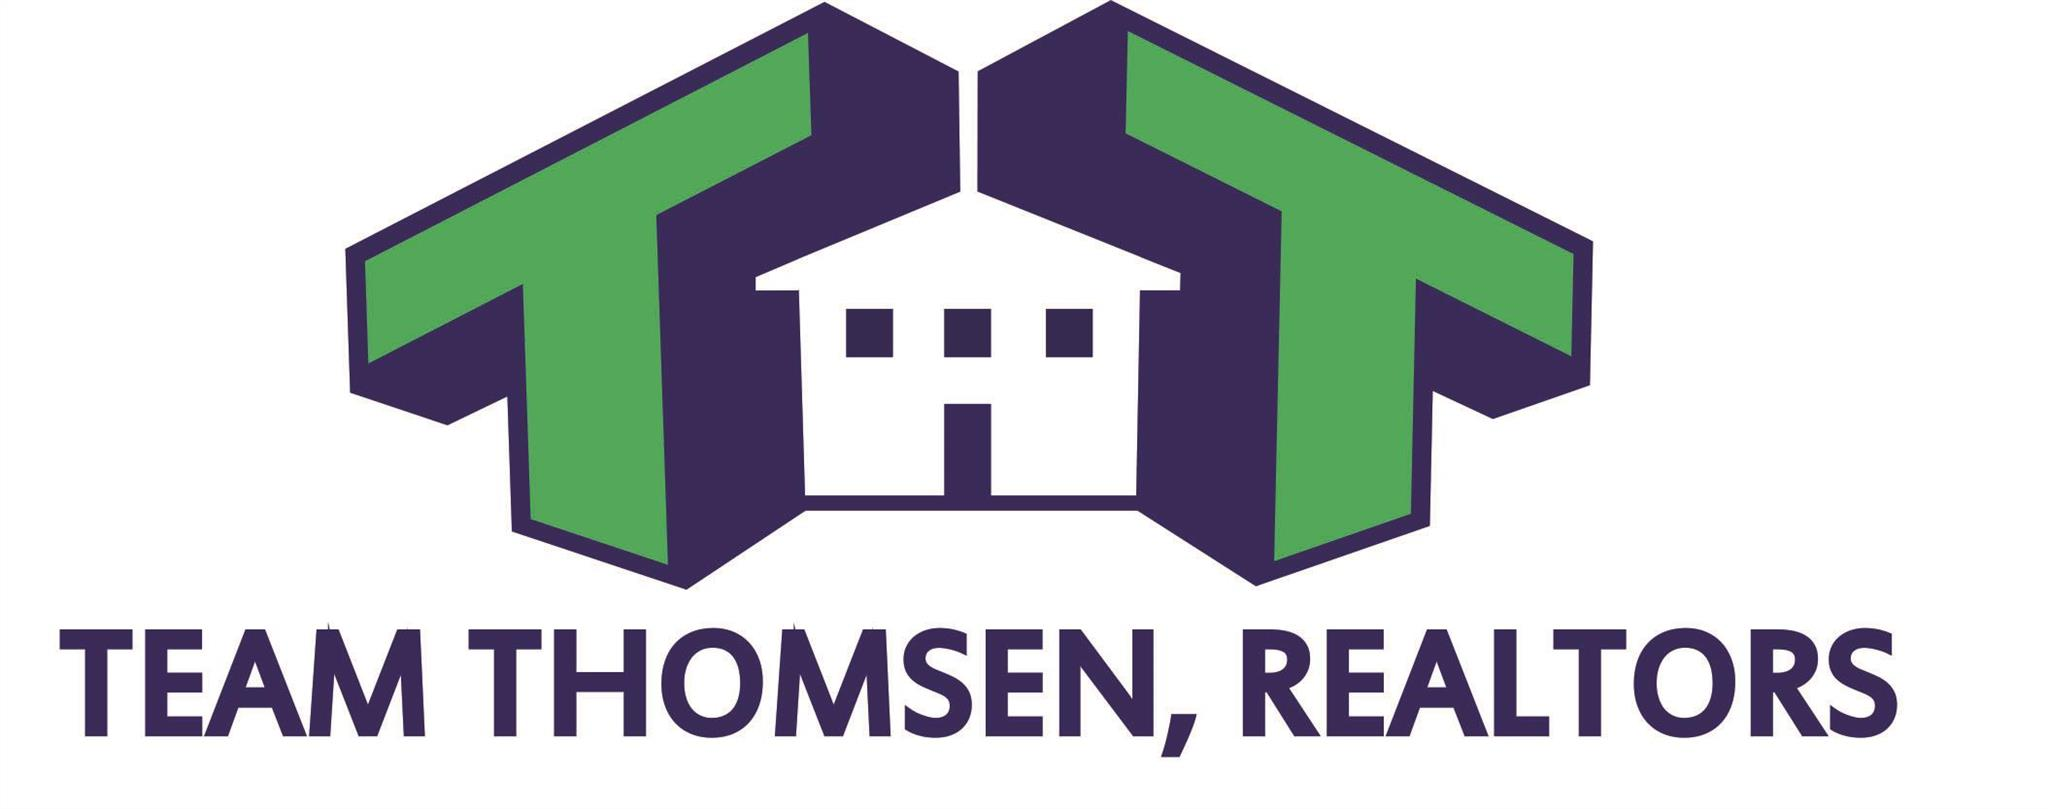 TeamThomsen_logo_final2__1.jpg